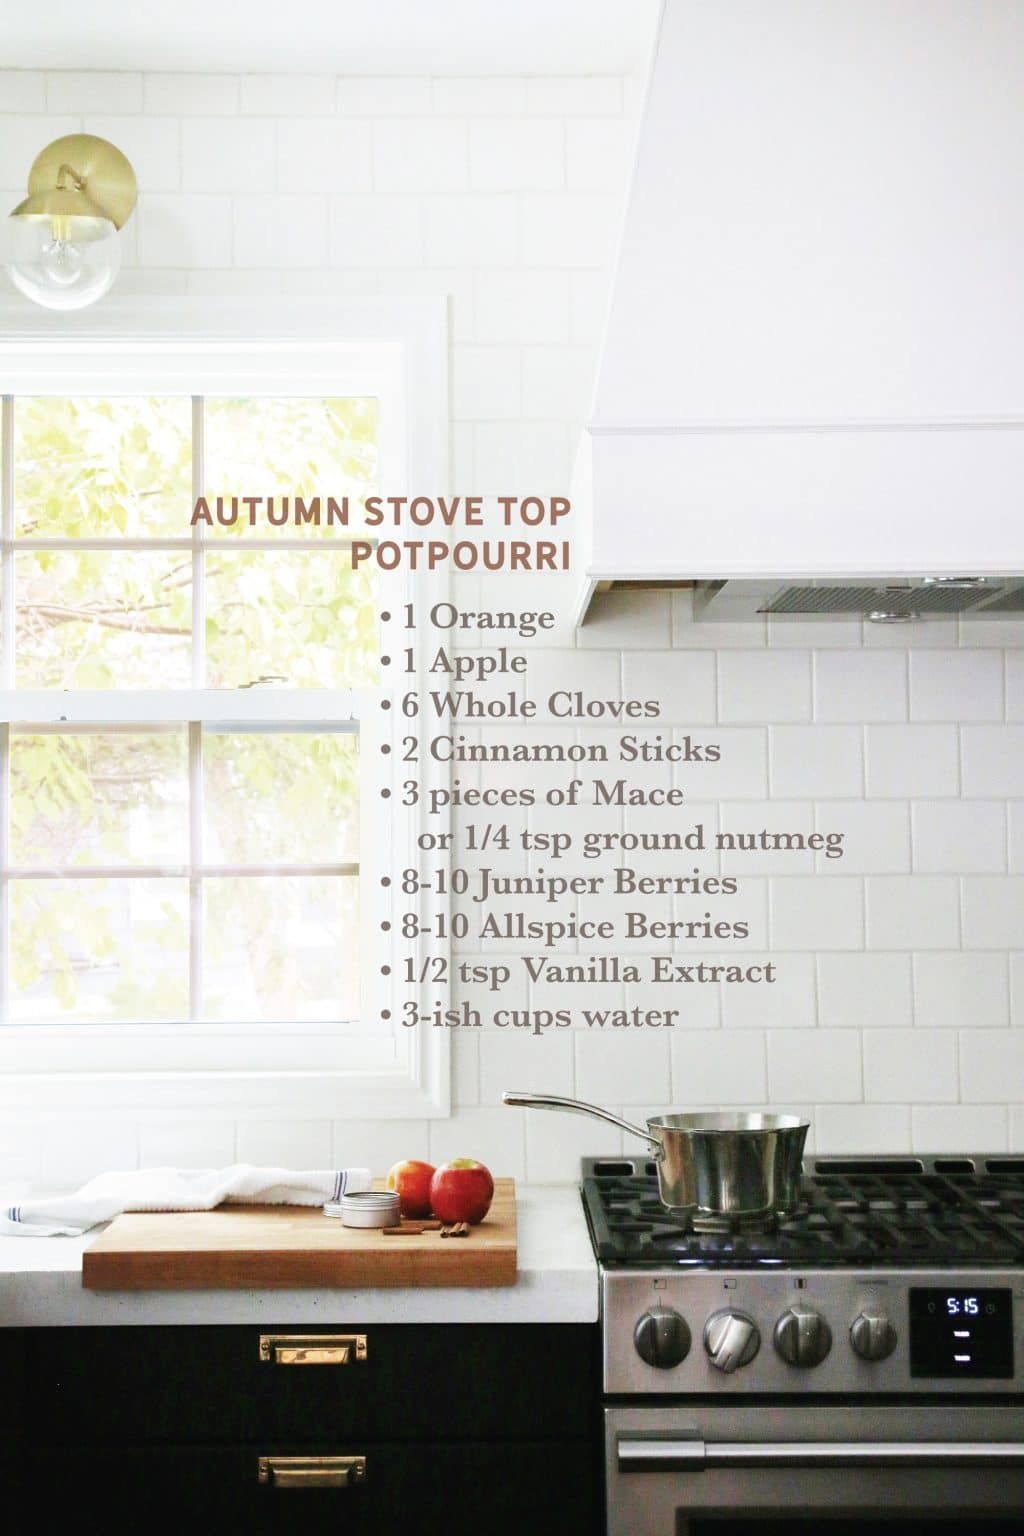 Autumn Stove Top Potpourri | Chris Loves Julia